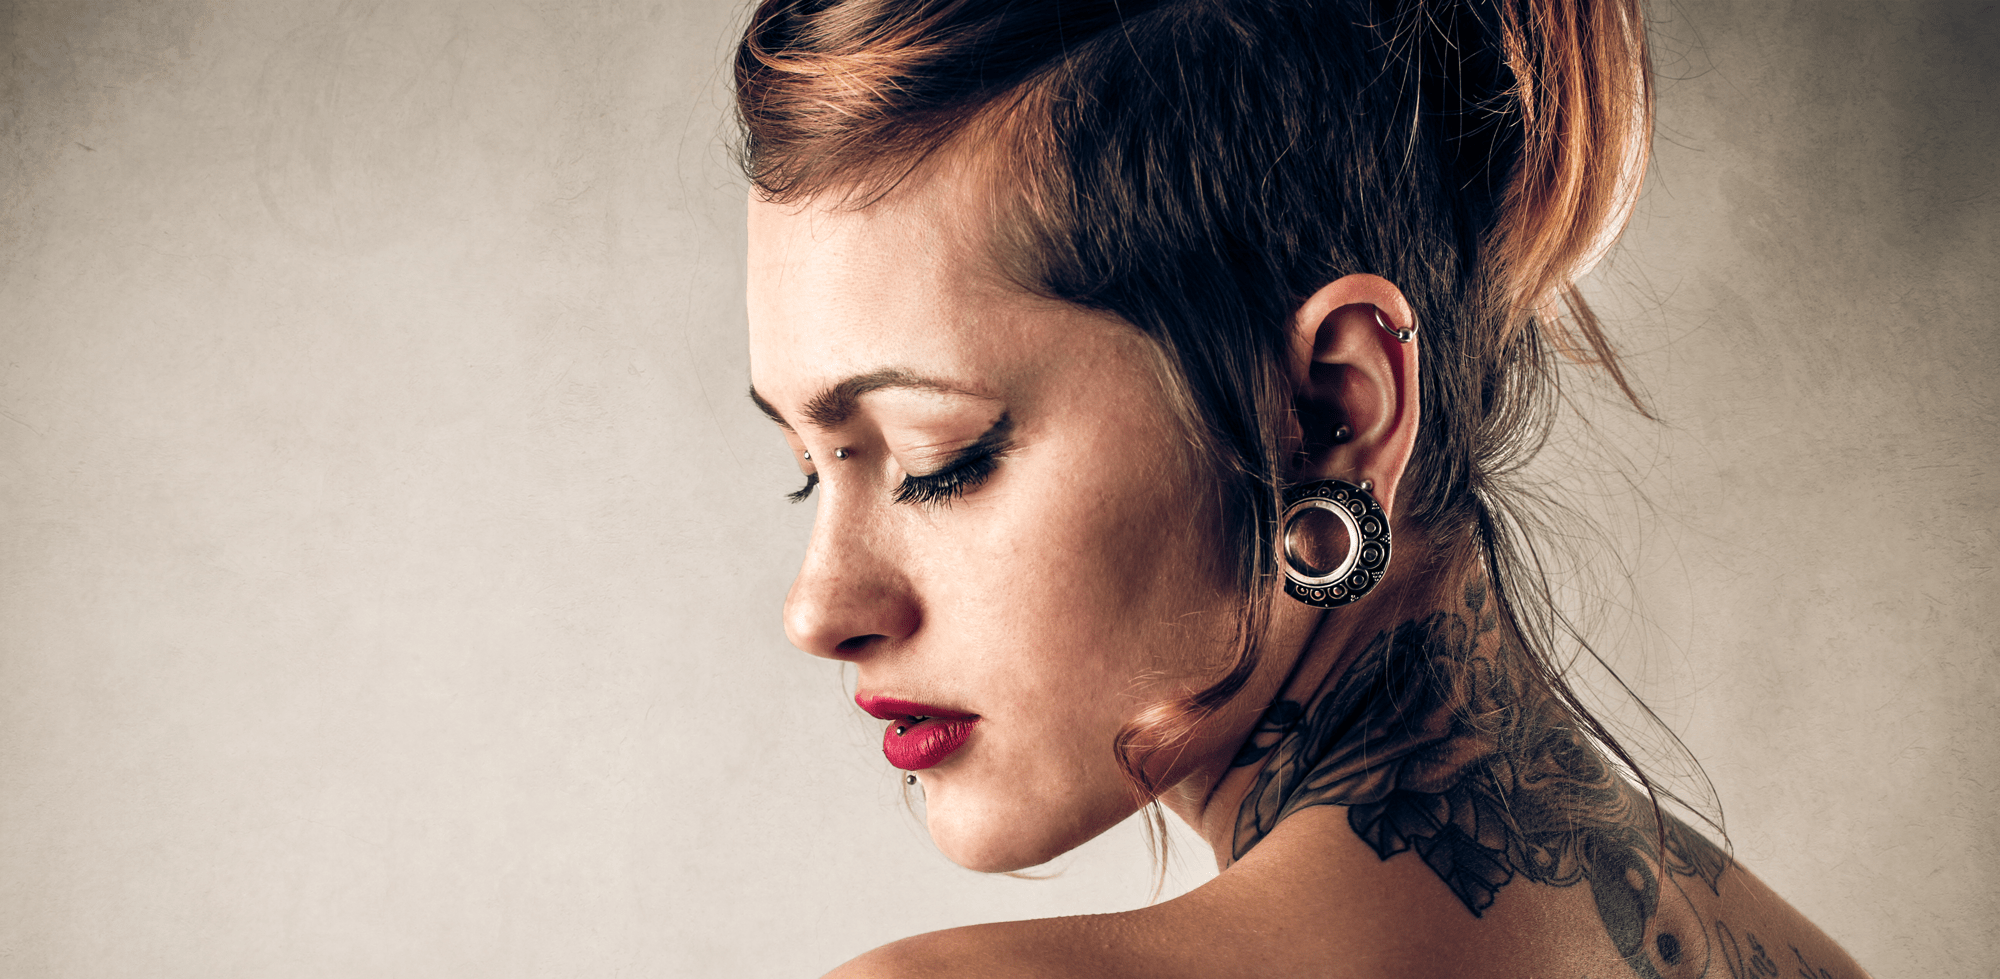 Tattoed girl with ear and facial piercings